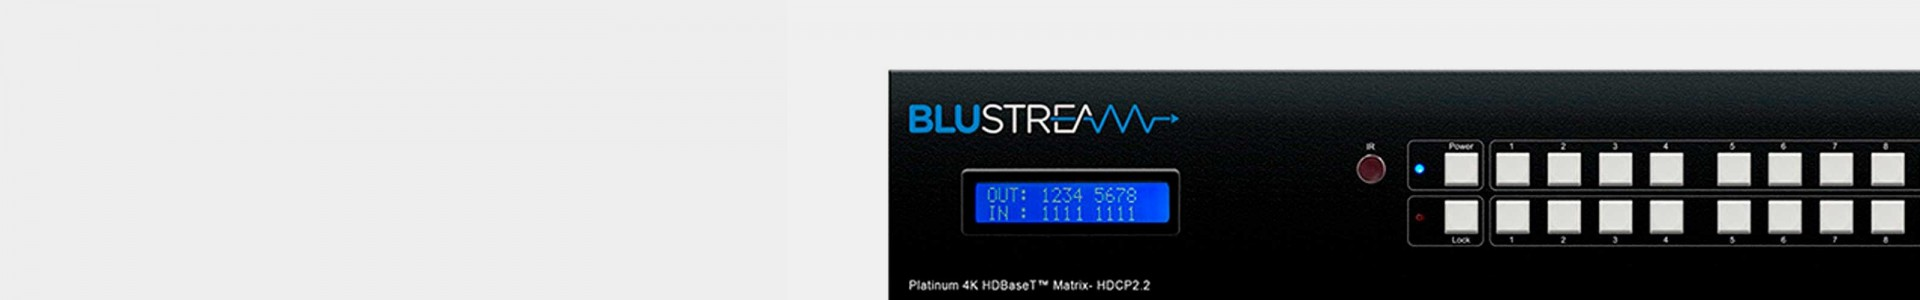 Blustream at Avacab - Special price for installers